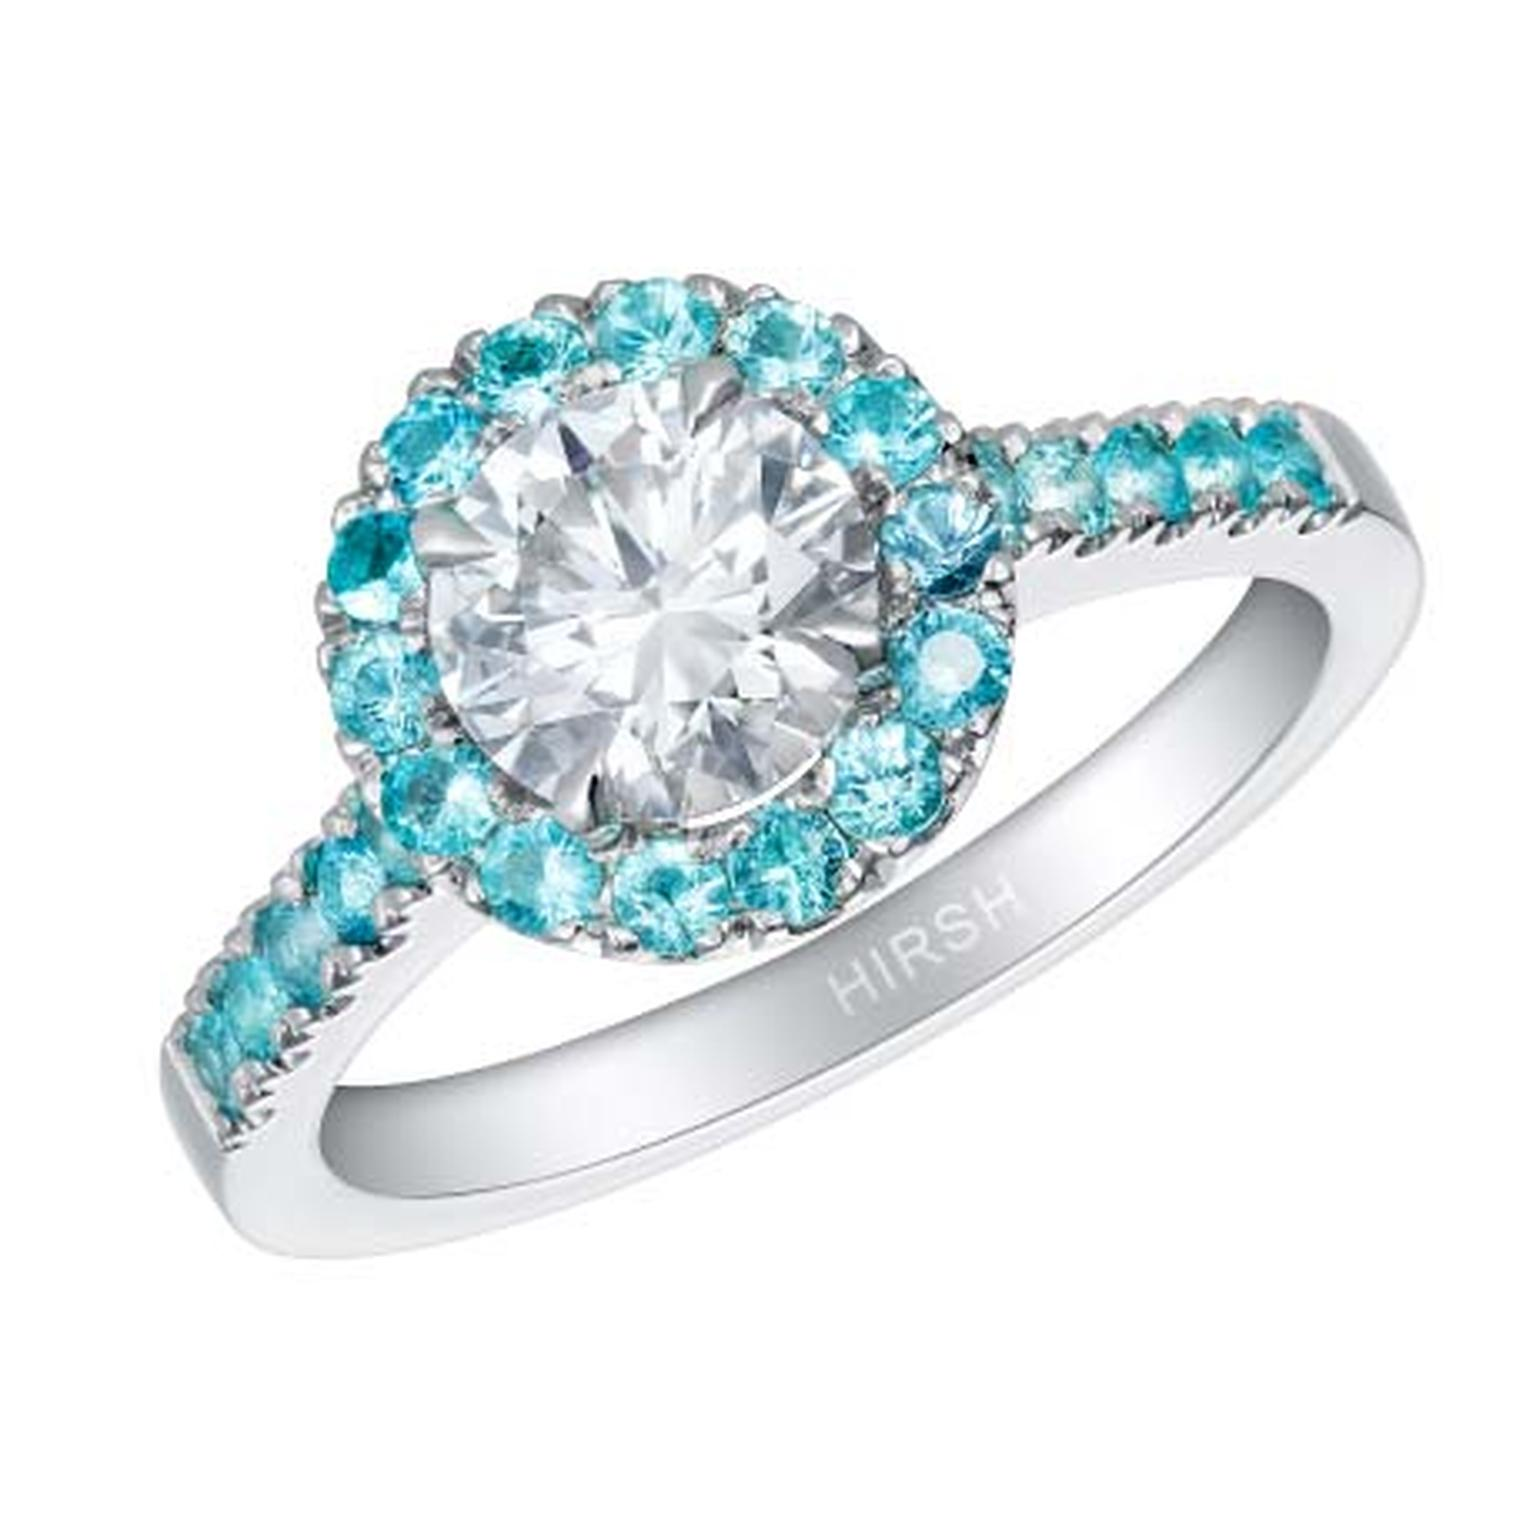 Hirsh round diamond and Paraiba tourmaline halo engagement ring